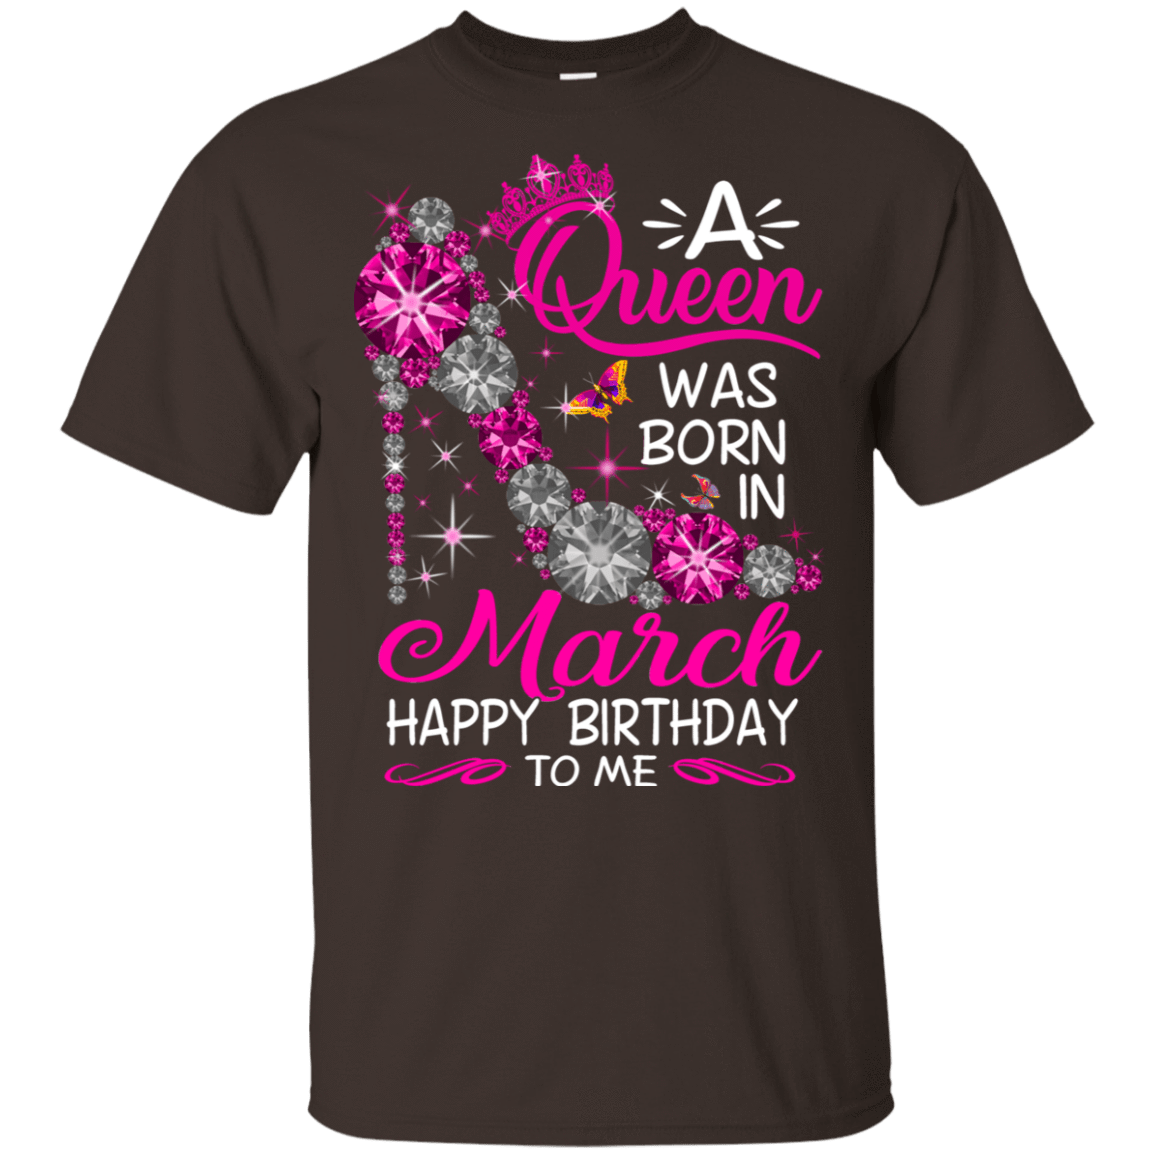 A Queen Was Born In March Happy Birthday To Me T-Shirts & Hoodies 22-2283-76451797-12087 - Tee Ript